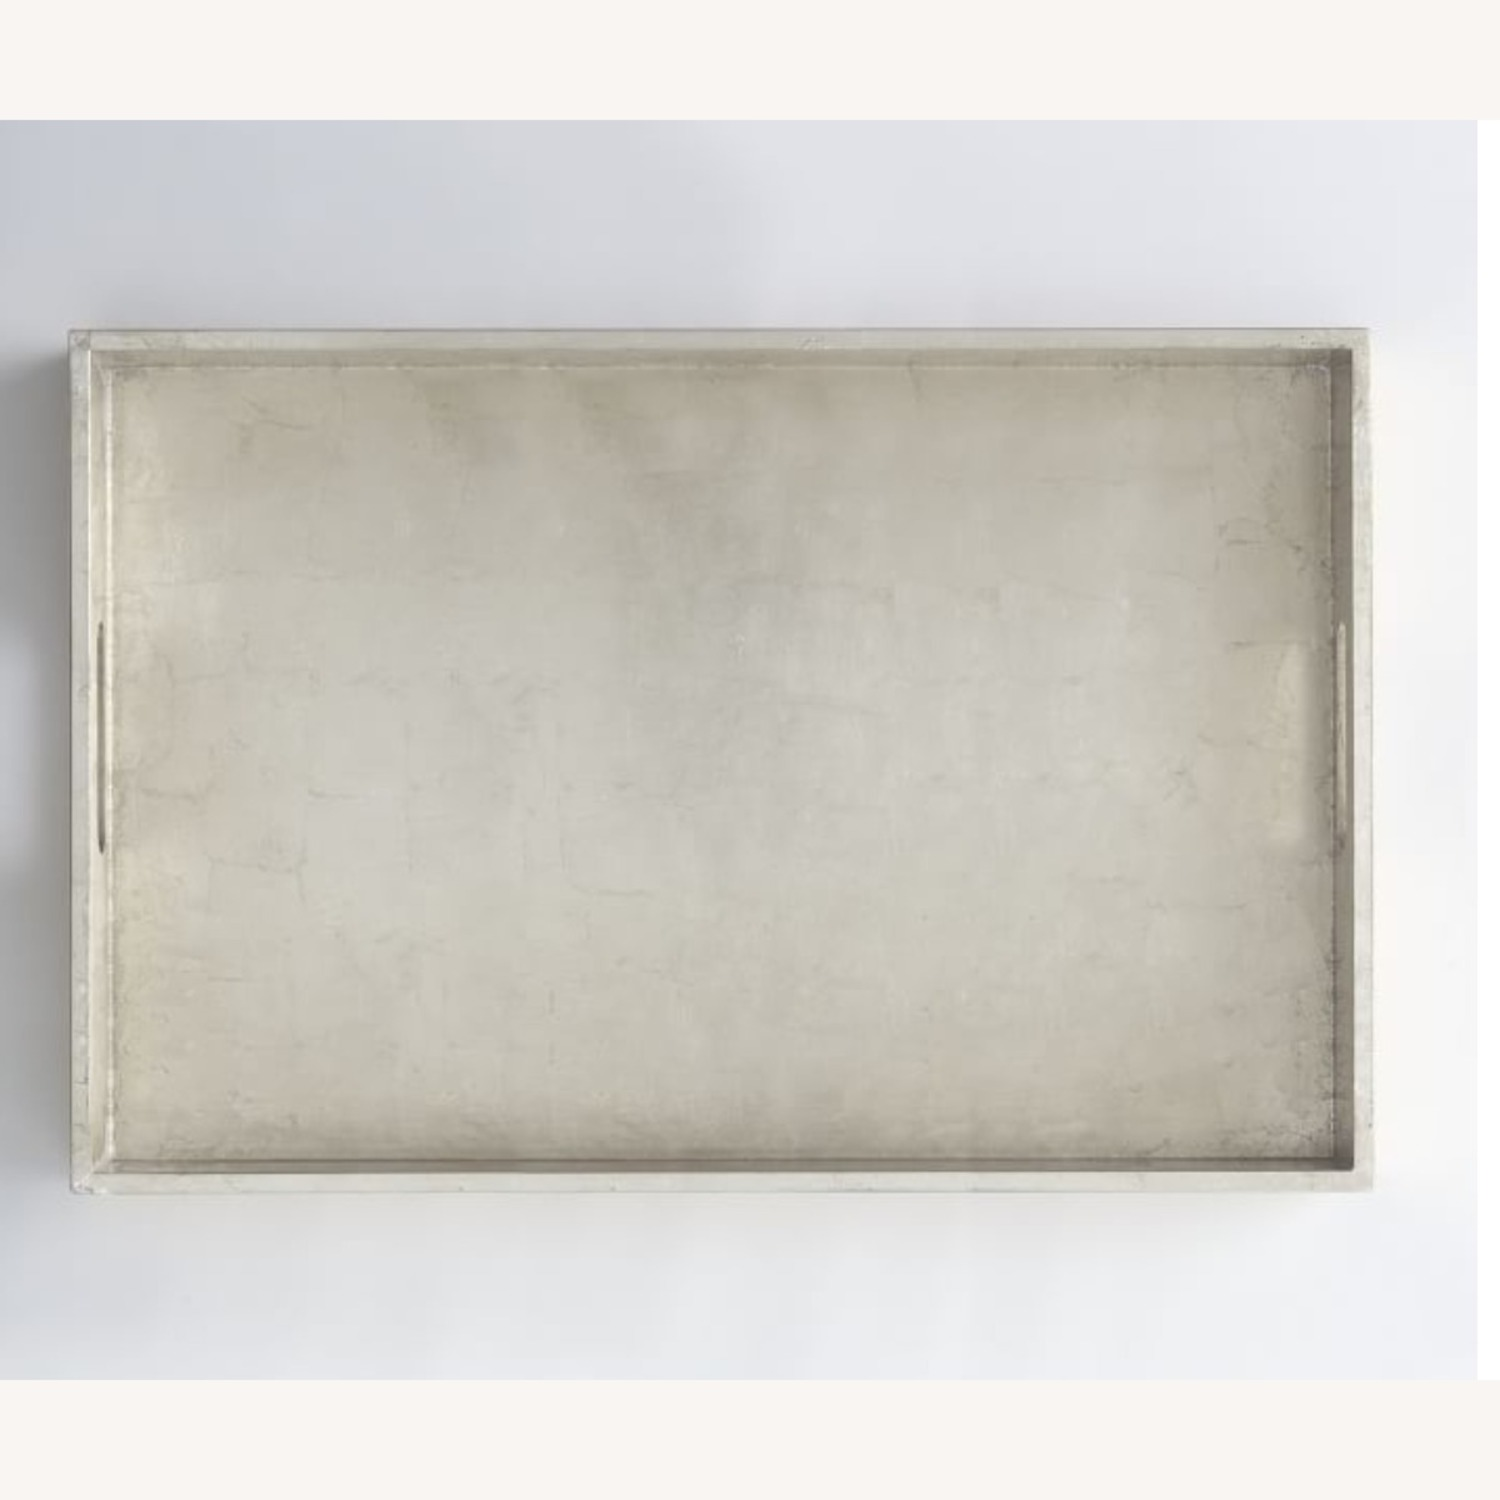 """West Elm Lacquer Wood Tray 18""""x28"""" Metallic Silver - image-1"""